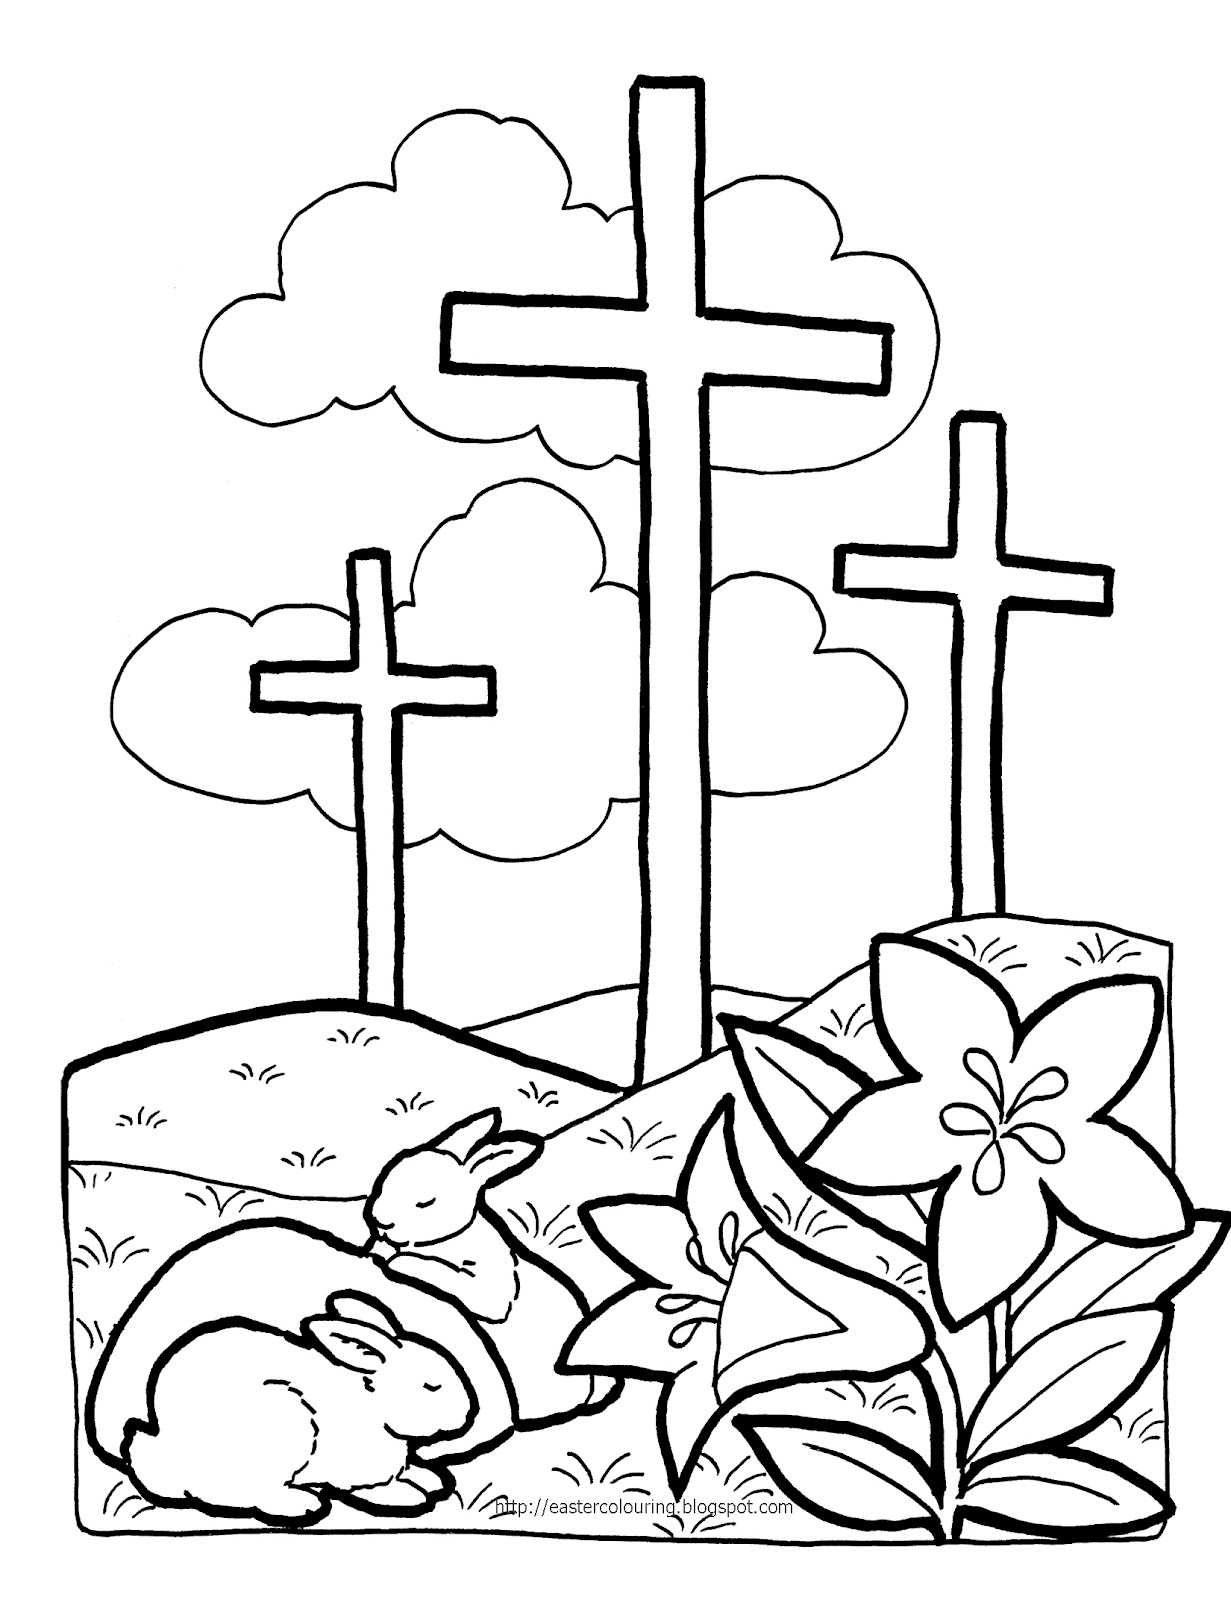 It's just an image of Priceless Free Printable Christian Coloring Pages